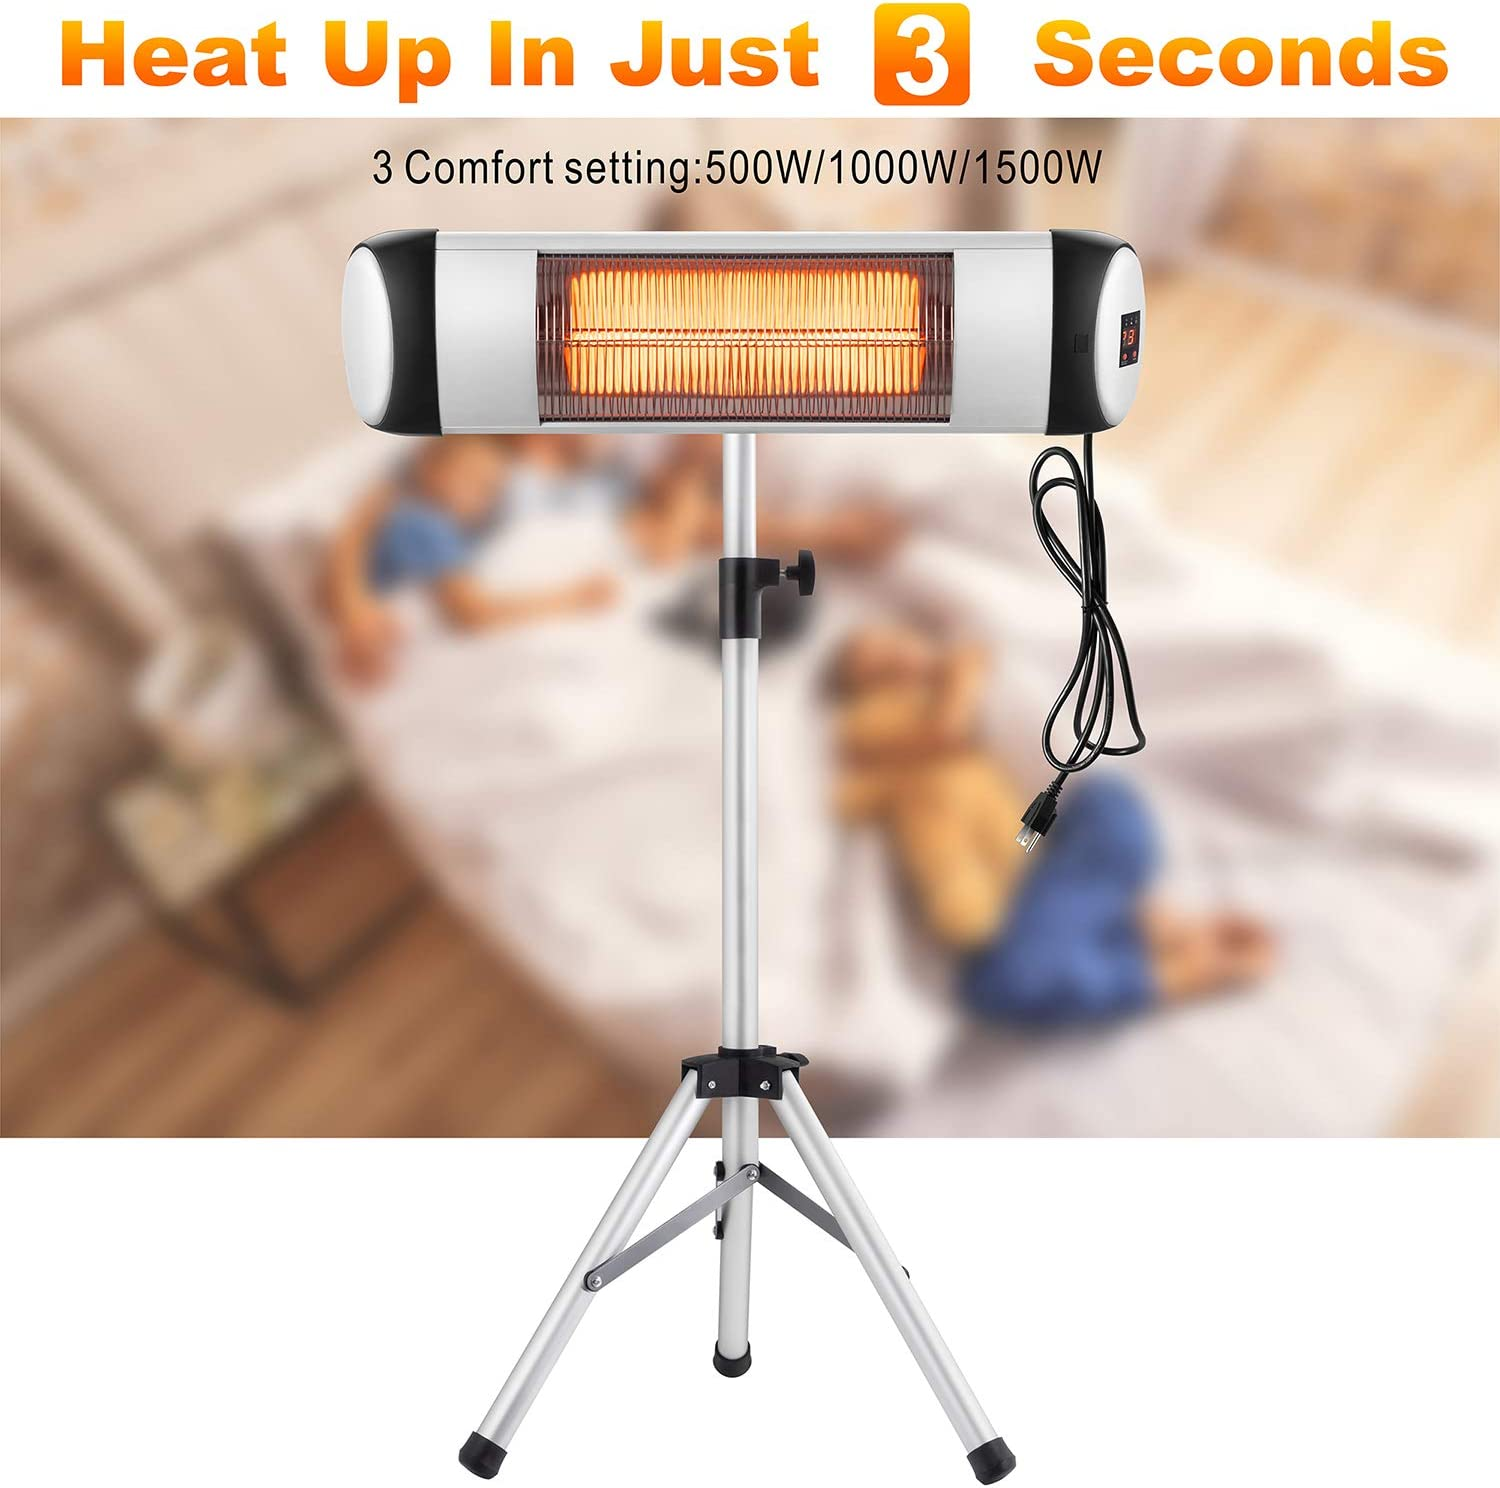 Outdoor//Indoor Electric Infrared Heater Freestanding/&Wall Mounted Space Heater for Garden Garage with Waterproof Aluminum Pole/&Remote Control Xbeauty Electric Patio Heater Balcony